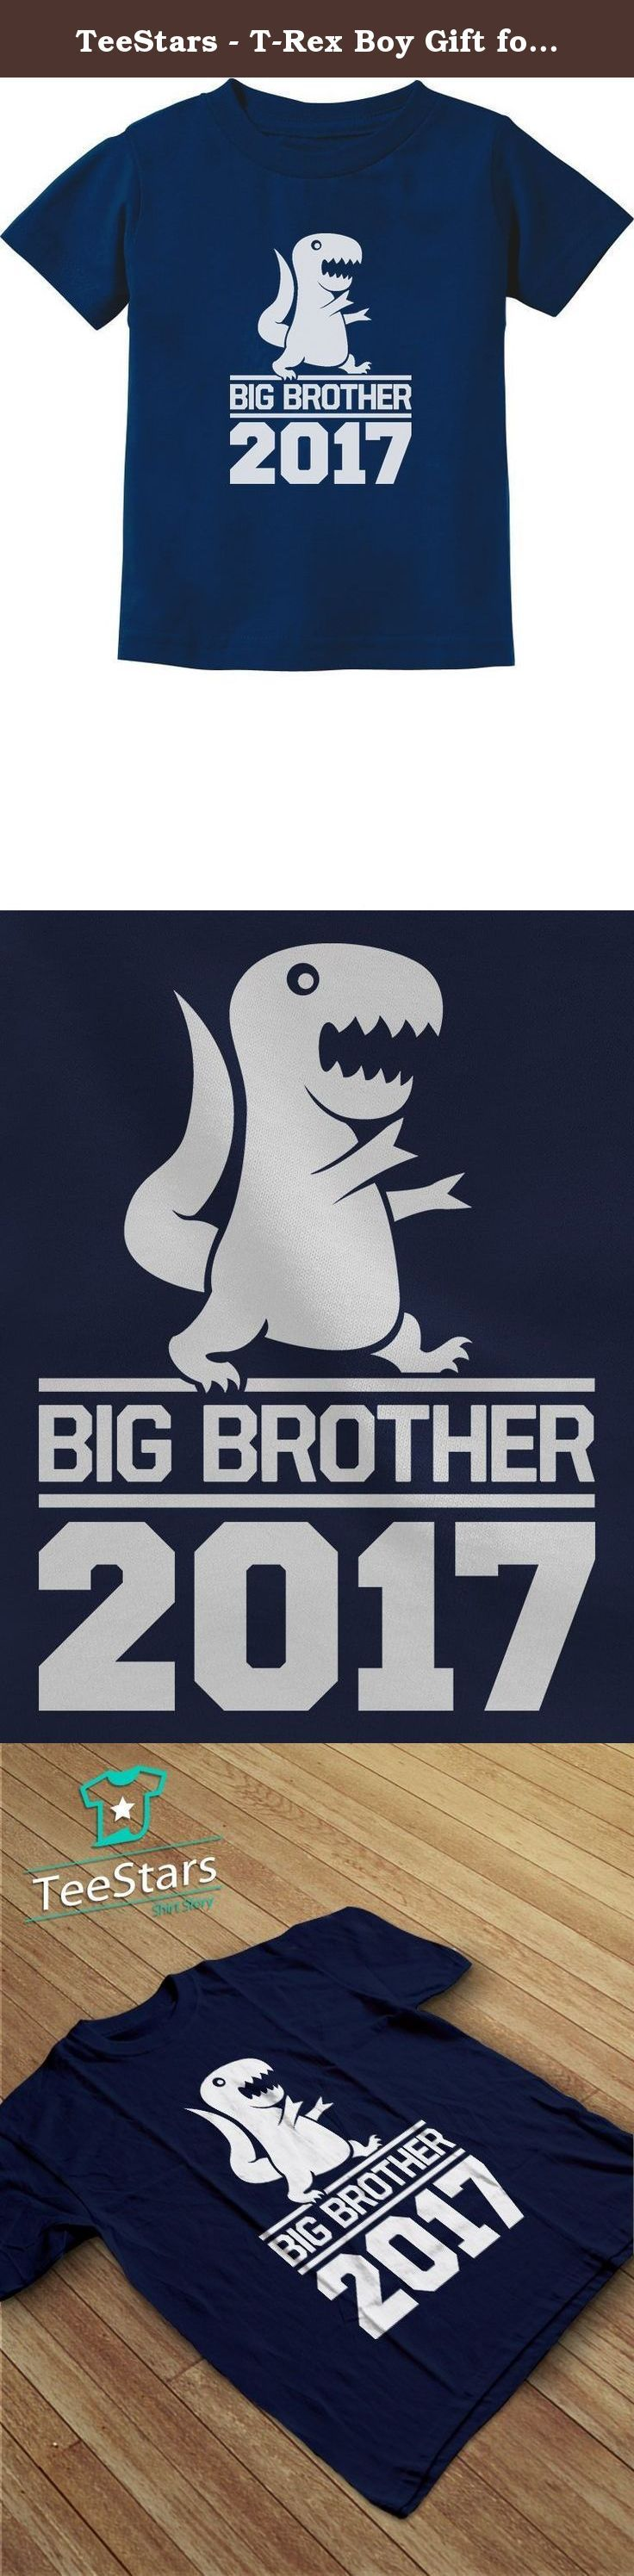 TeeStars - T-Rex Boy Gift for Big Brother 2017 Toddler/Infant Kids T-Shirt 4T Navy. T-Rex big boy - Best gift idea for big brother! Birth announcement, baby shower, birthdays, Christmas present for son / grandson. Cute little kids Tee. Premium quality, short sleeved t-shirt. preshrunk 100% combed-cotton knit, machine washable. Available in a wide variety of colors and sizes: Infant sizes: 6 - 24 Months / Toddler sizes: 2T-7T. Choose the size and color options from the drop-down list…